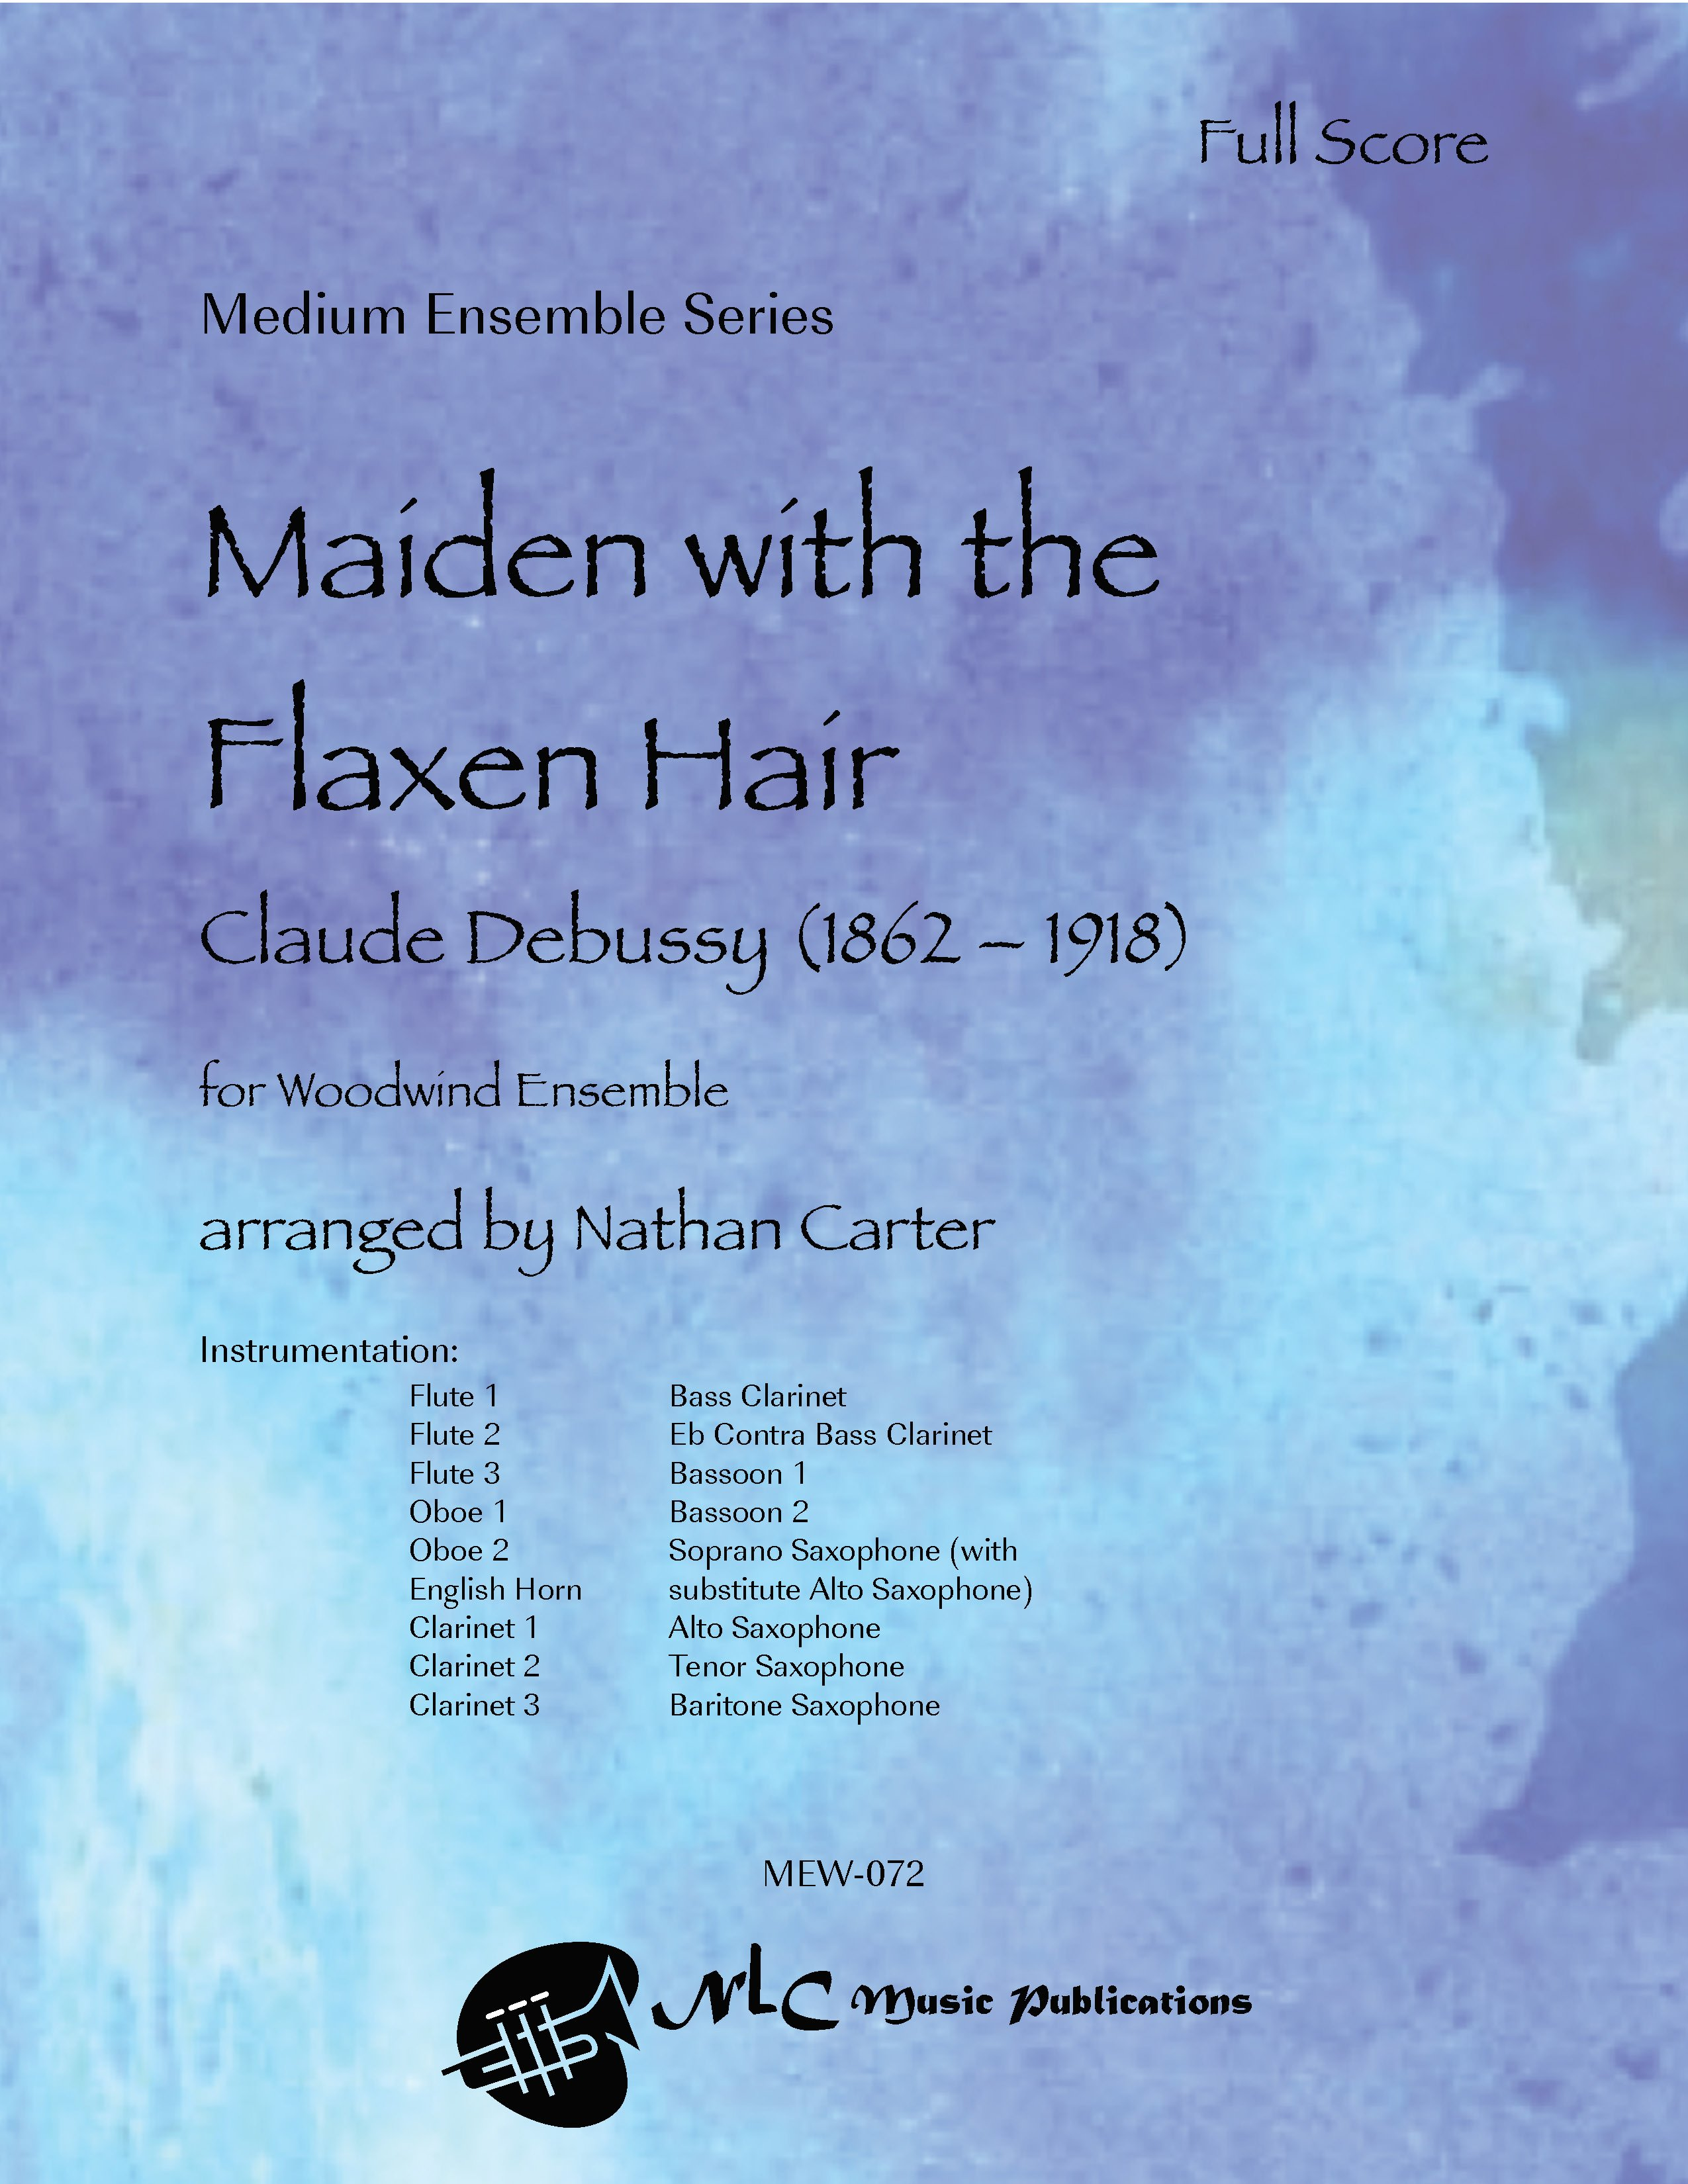 Maiden with the Flaxen Hair